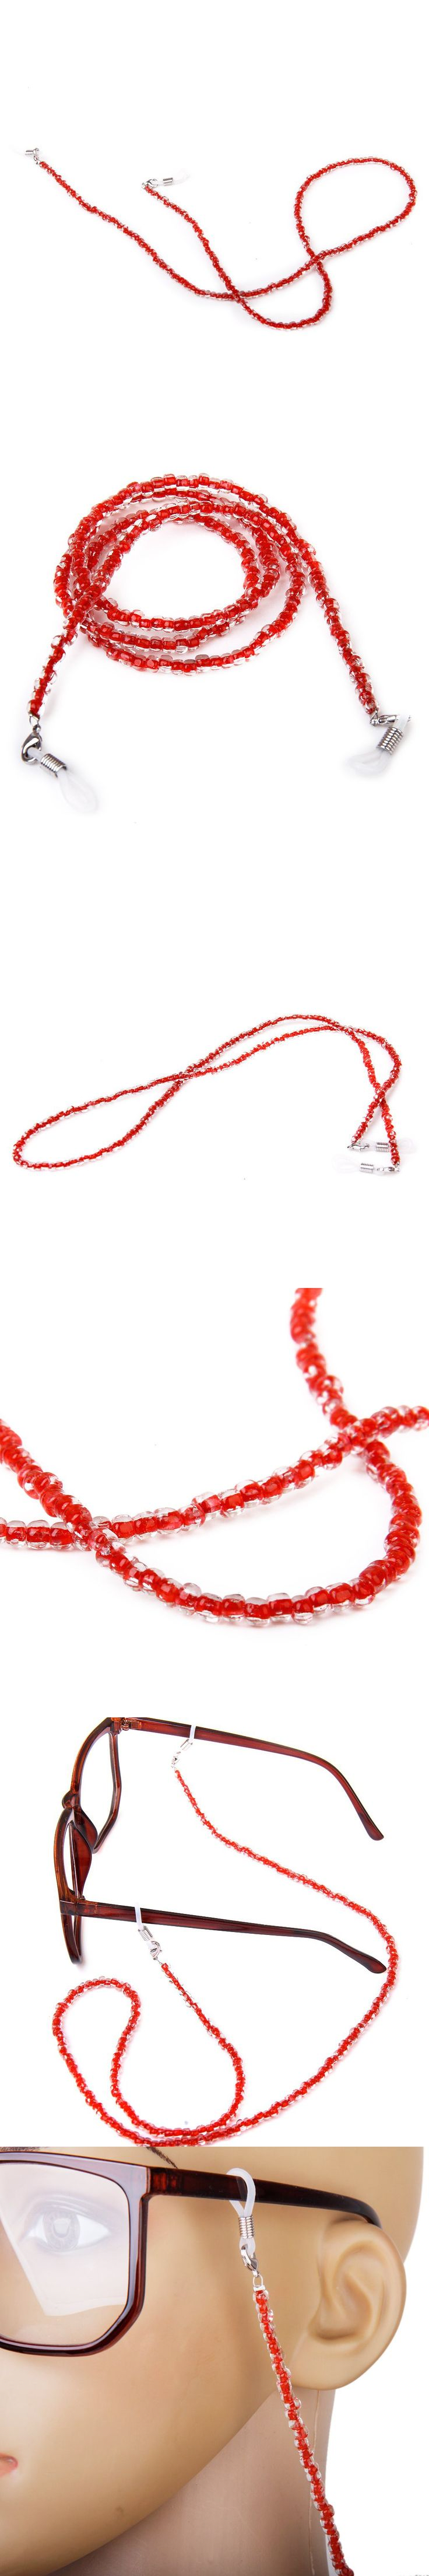 IMC Eyeglasses/Sunglasses Bead Chain Holder Neck Cord 65CM - Red $1.64